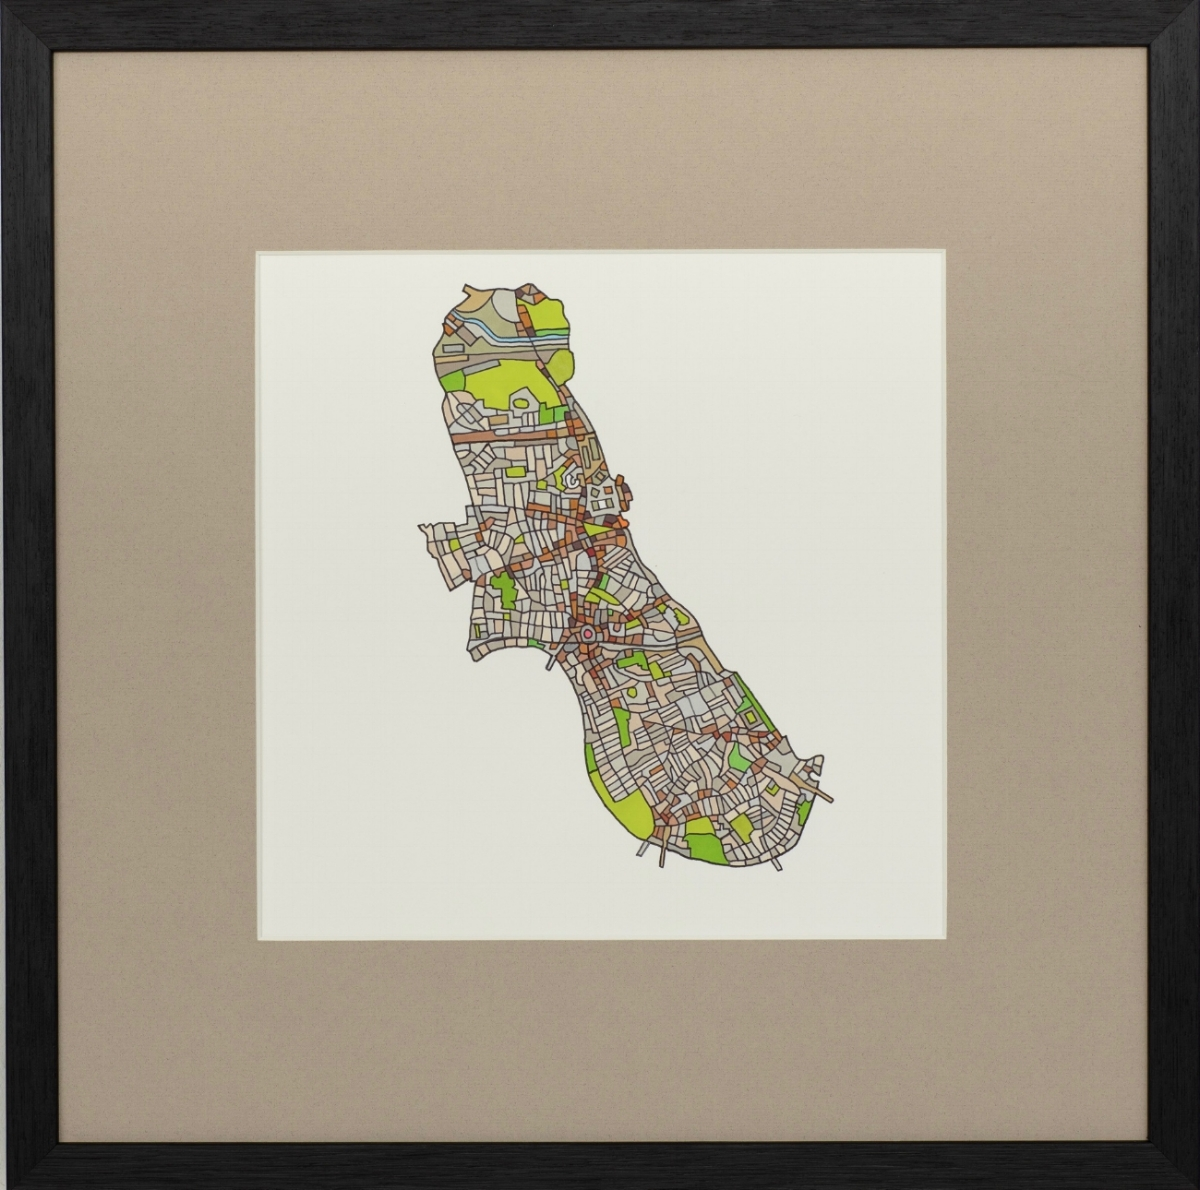 London Borough of Hammersmith & Fulham 2018 | Ink on Paper | 44 x 44 cm (framed) | £450